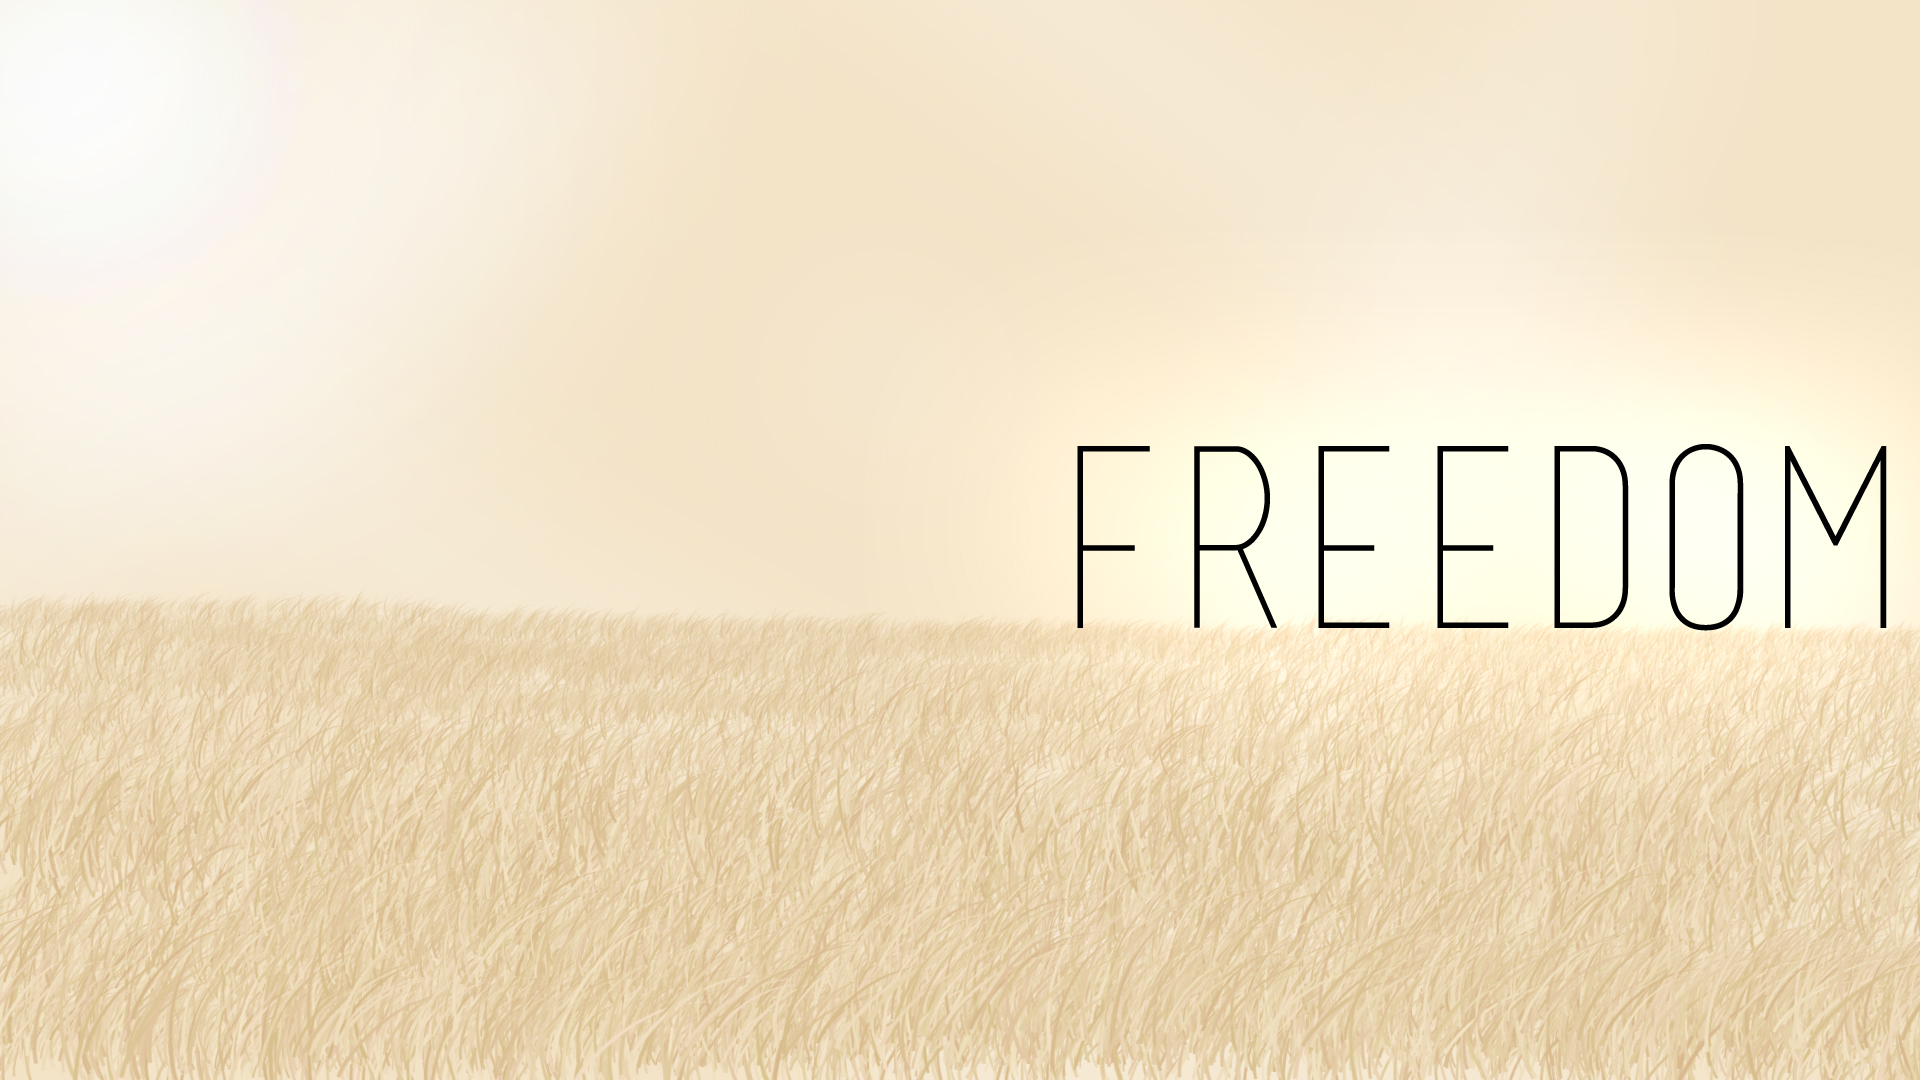 Freedom Wallpaper Picture 1920x1080